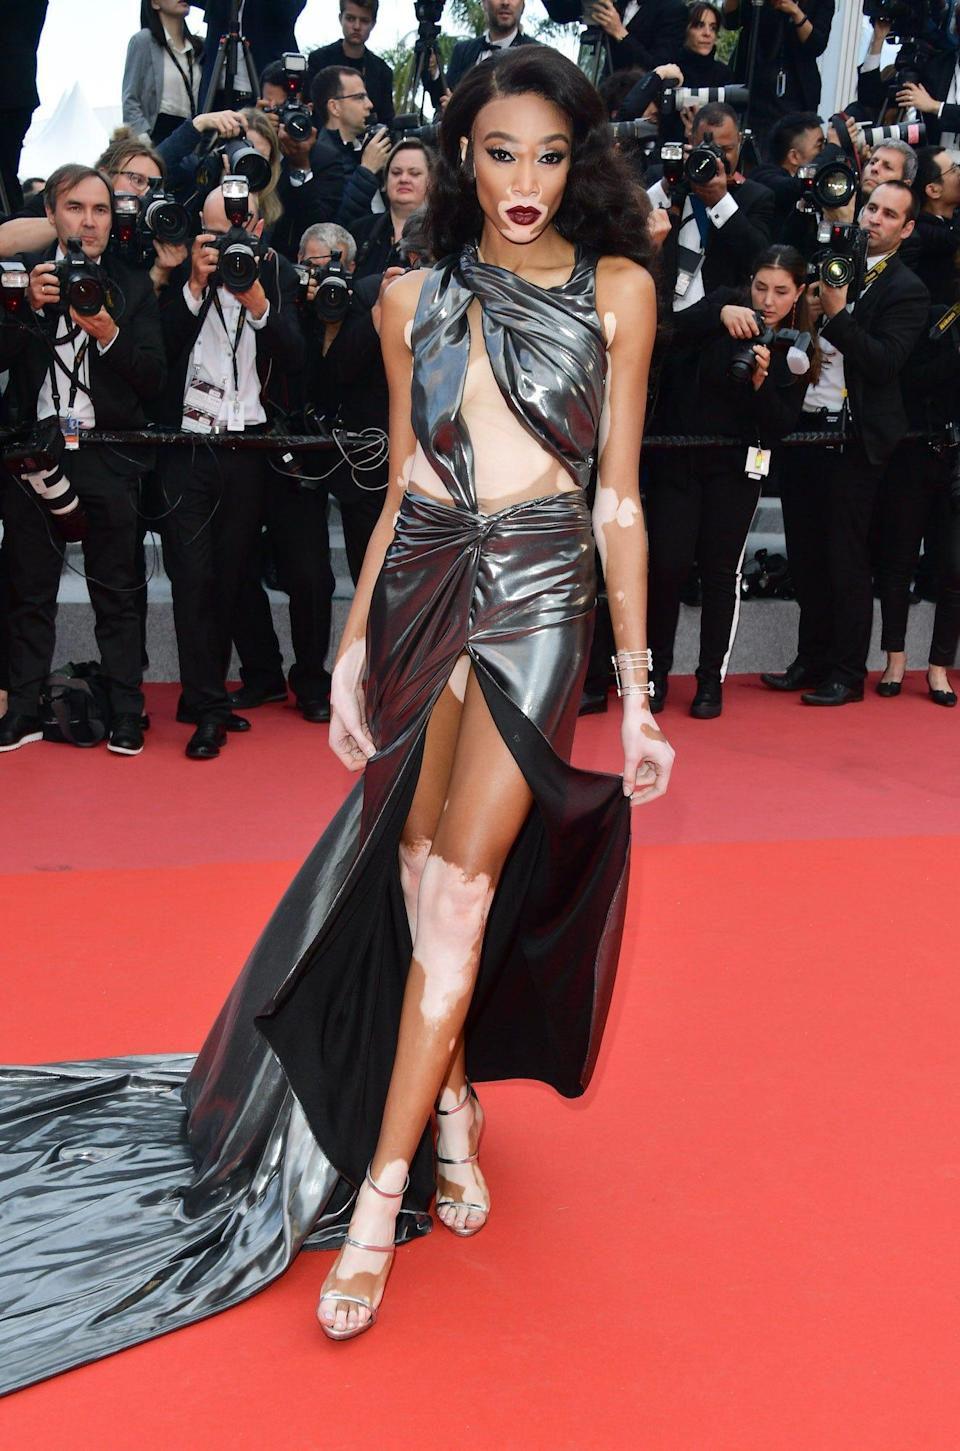 Winnie Harlow wears a silver wrap dress at the 2018 Cannes Film Festival.